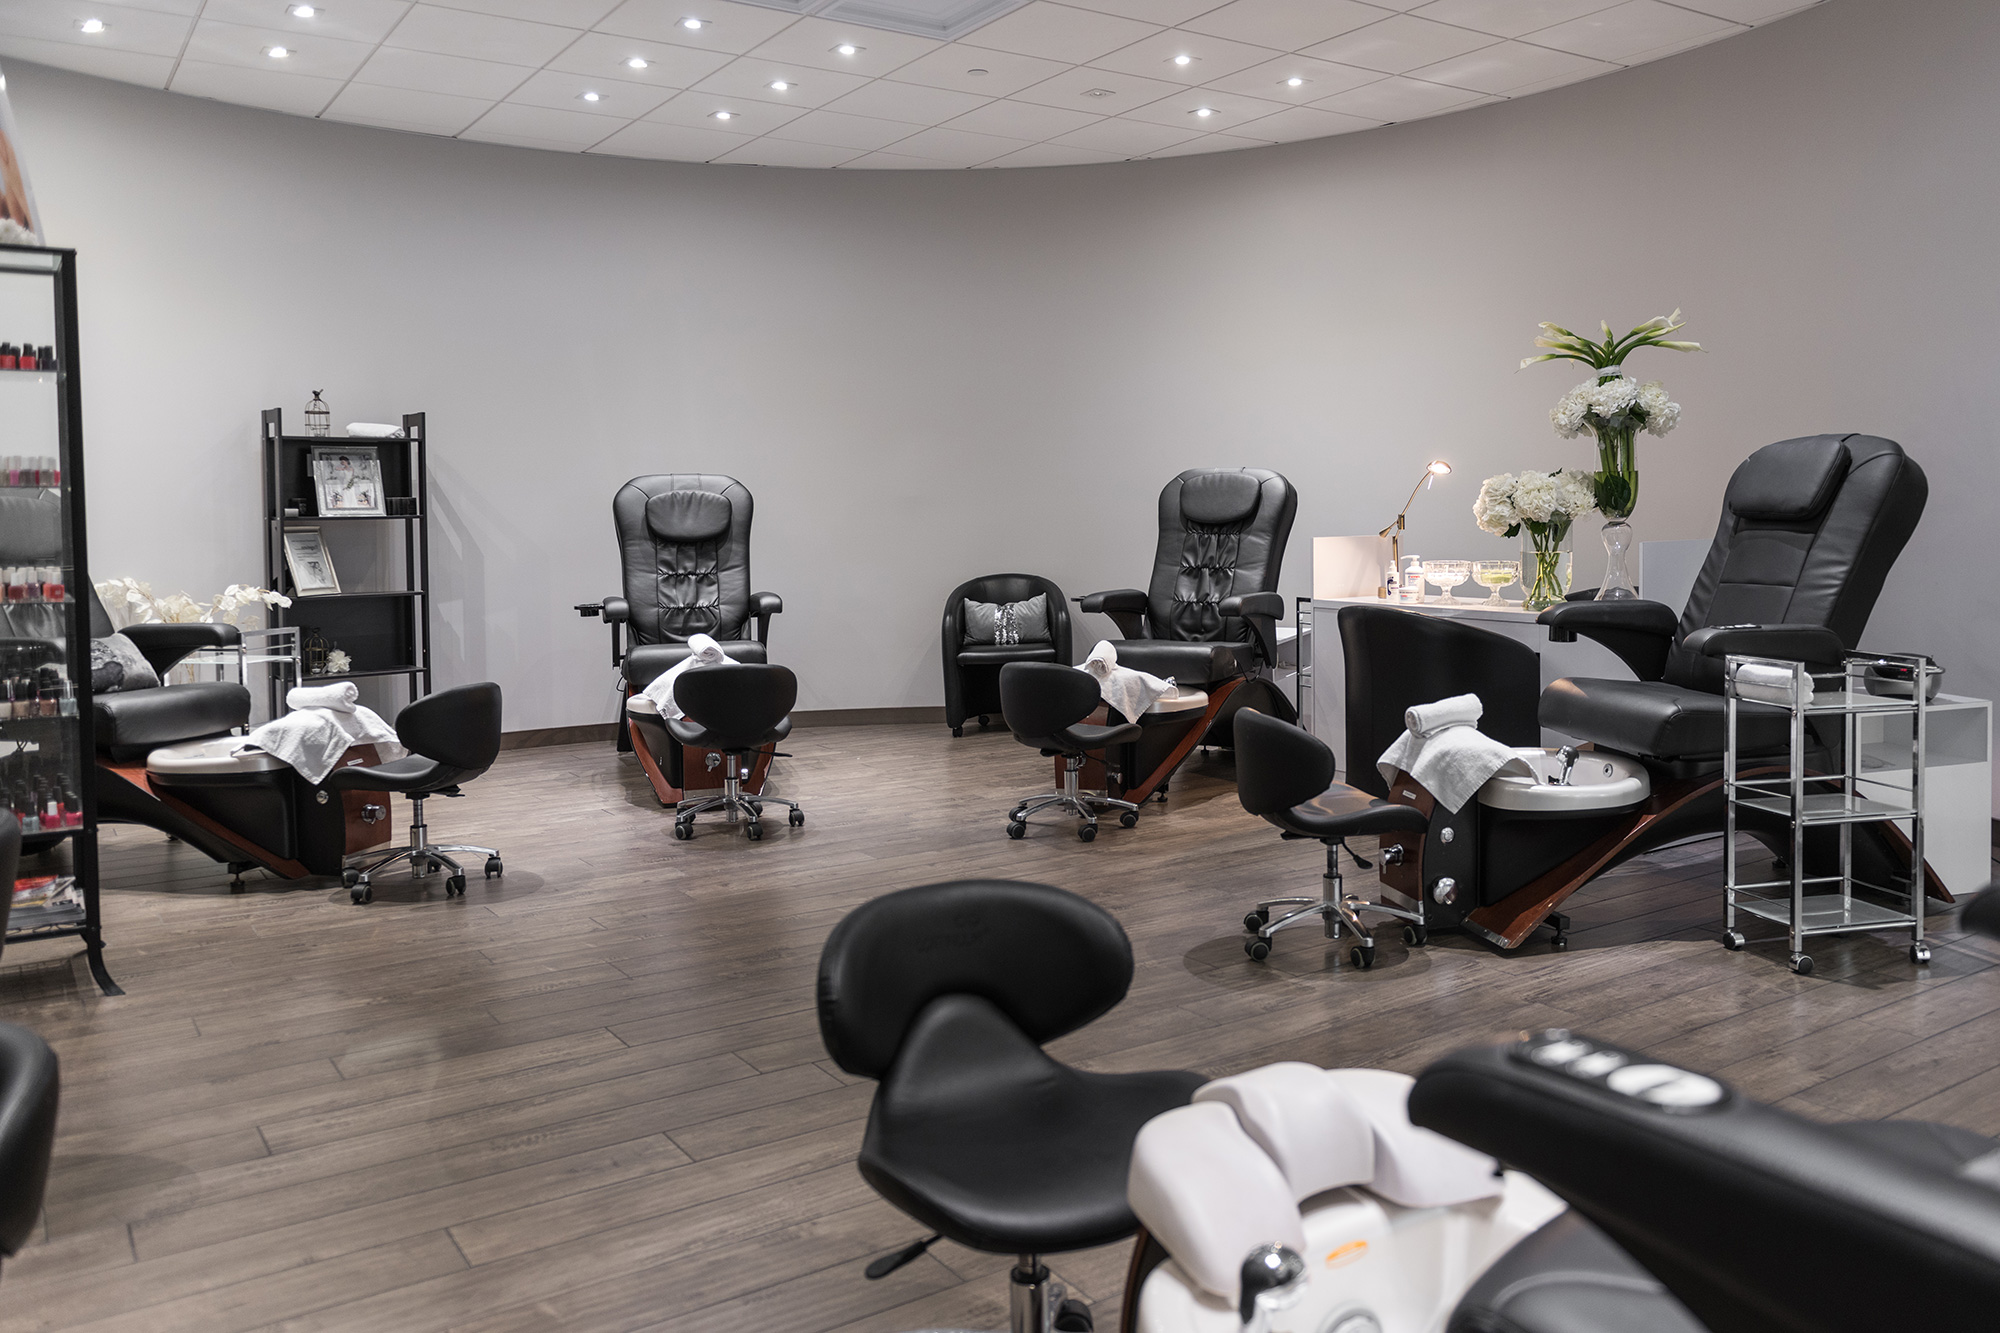 Meilleur Salon Coiffure Montreal Montreal Hair Beauty Salon Avanti Le Spa